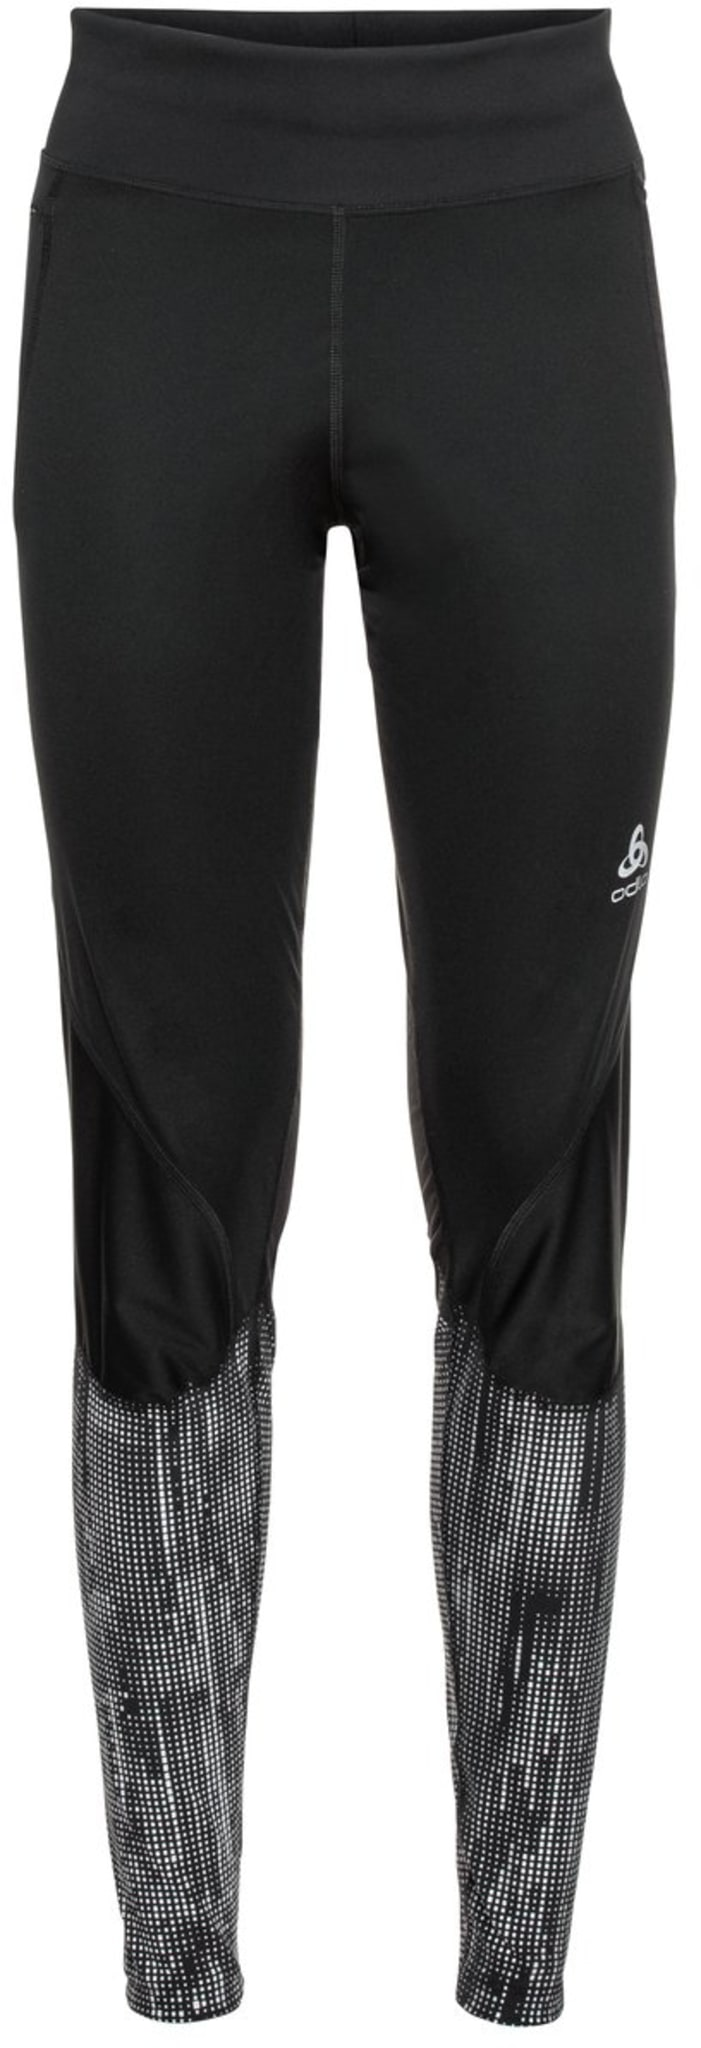 Zeroweight Warm Reflect Tights